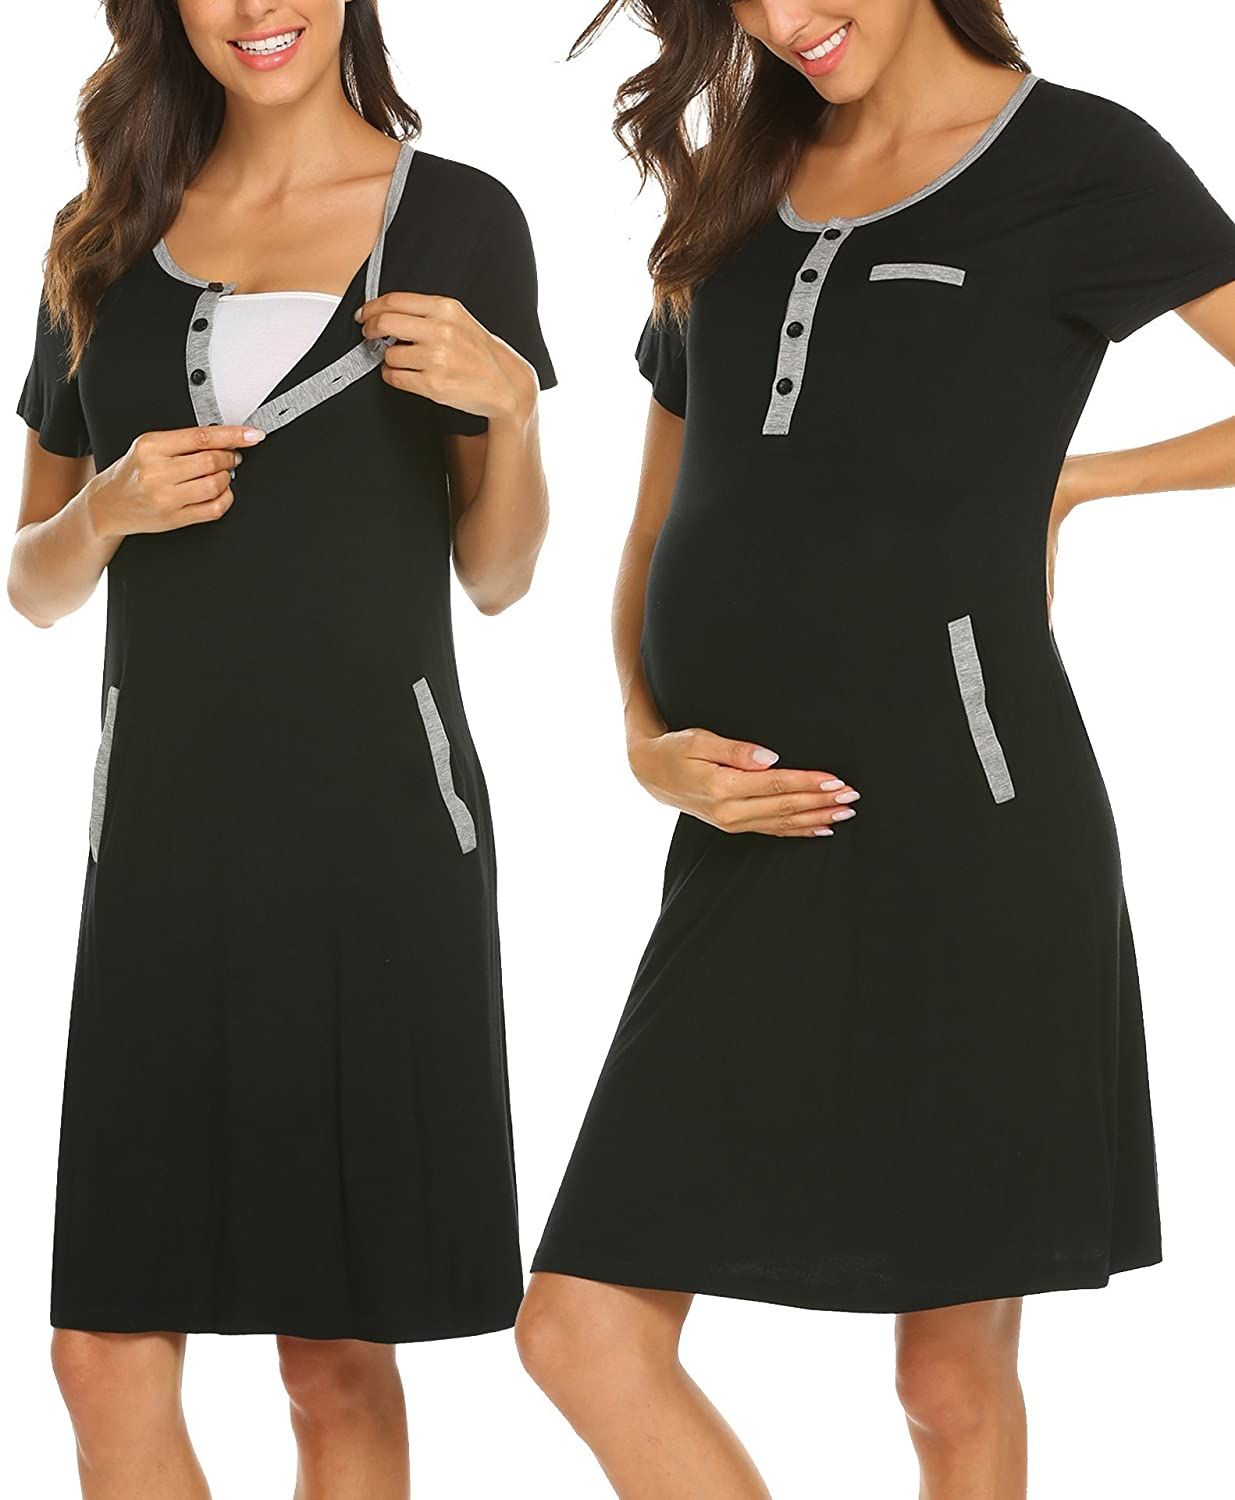 3b480c4e275 High Quality: soft and comfortable cotton fabric, comfy night dress for  Nursing and Maternity Round neck , short sleeve, bottom down collar, ...